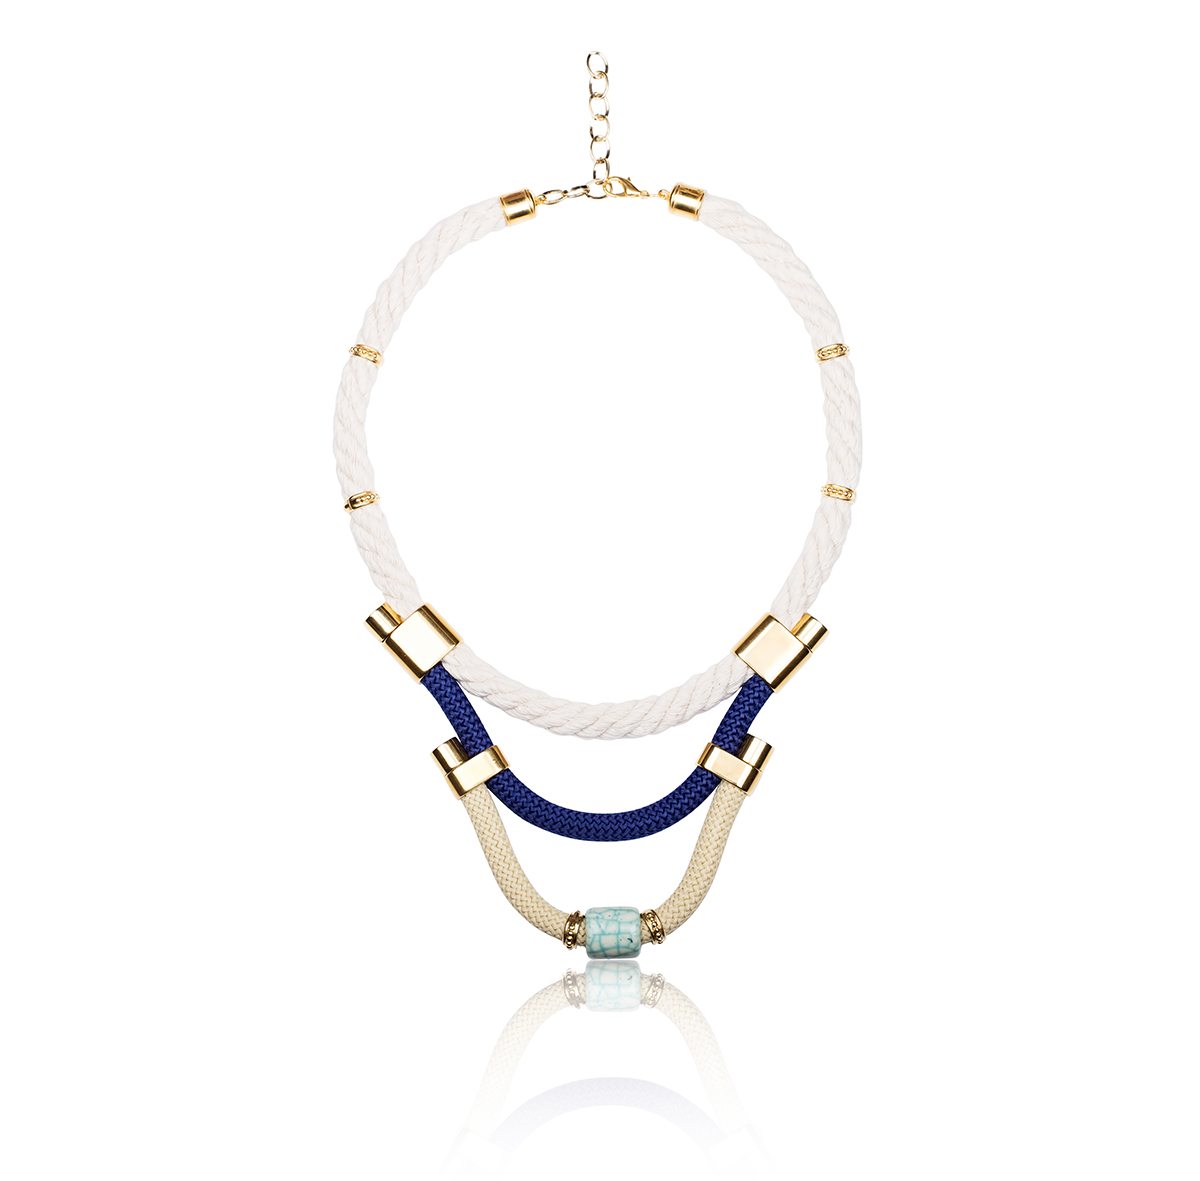 IRIS: Make a statement necklace / Blue, White & Gold | Accessories,Jewelry > Necklaces,Jewelry -  Hiphunters Shop